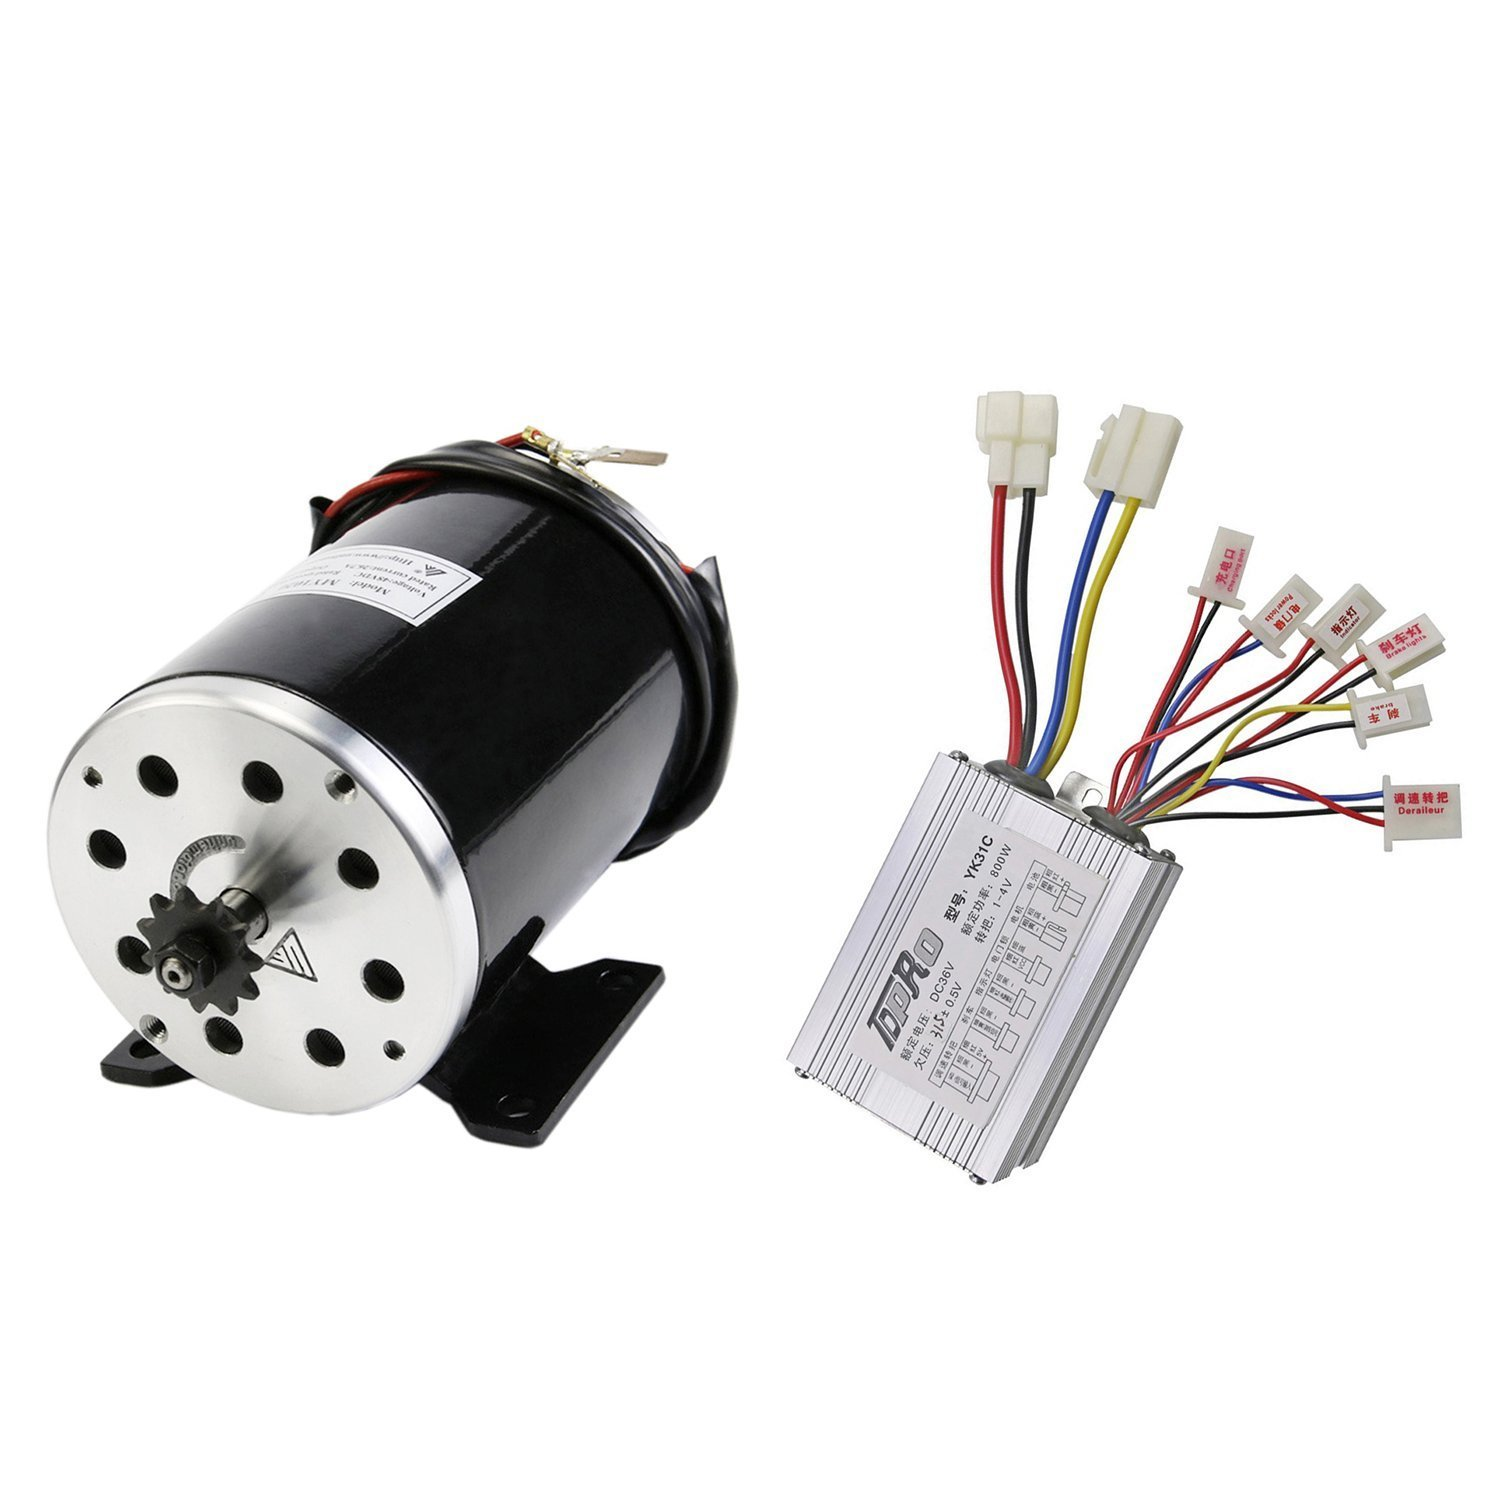 TDPRO JCMOTO 36v 800w Brushed Speed Motor and Controller Set for Electric Scooter Go Kart Bicycle e Bike Tricycle Moped by TDPRO